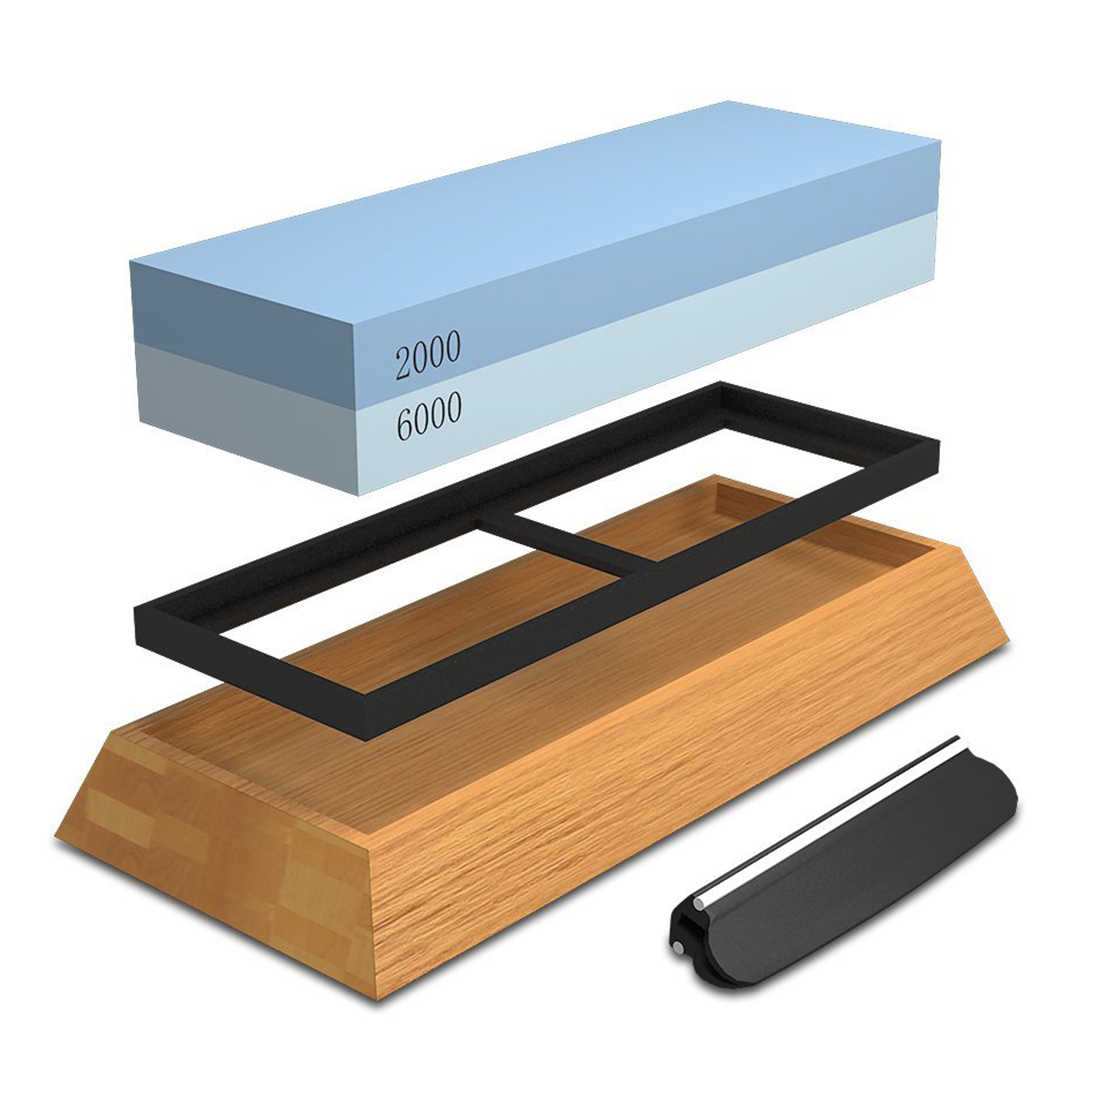 Sharpening Stone For Knives, Professional Waterstones Combination Grit 2000/6000 Whetstone Sharpening with Bamboo Base Blue new